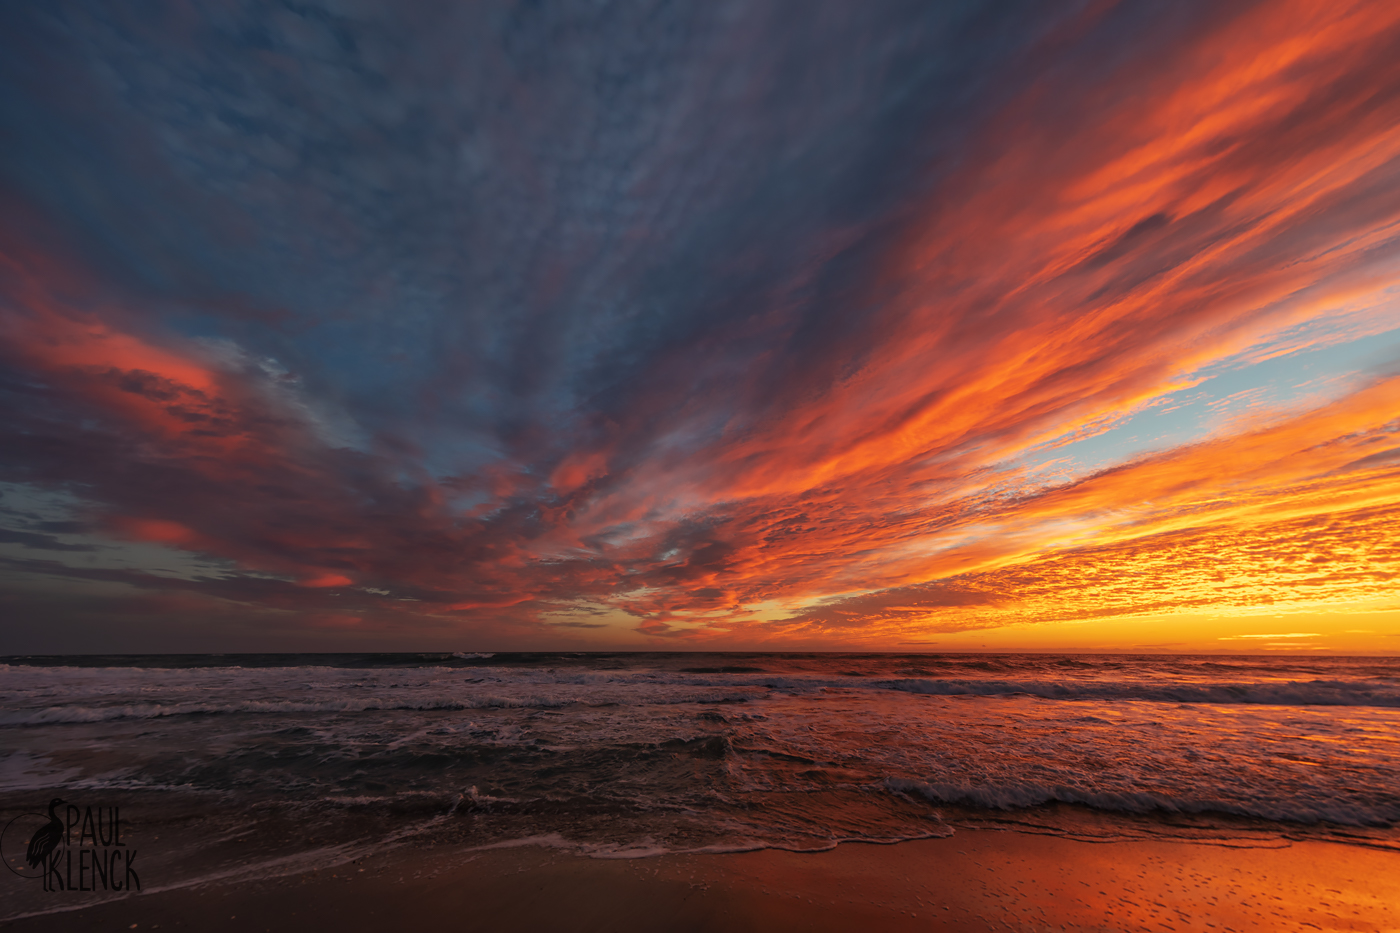 Dawn, Melbourne Beach, Florida